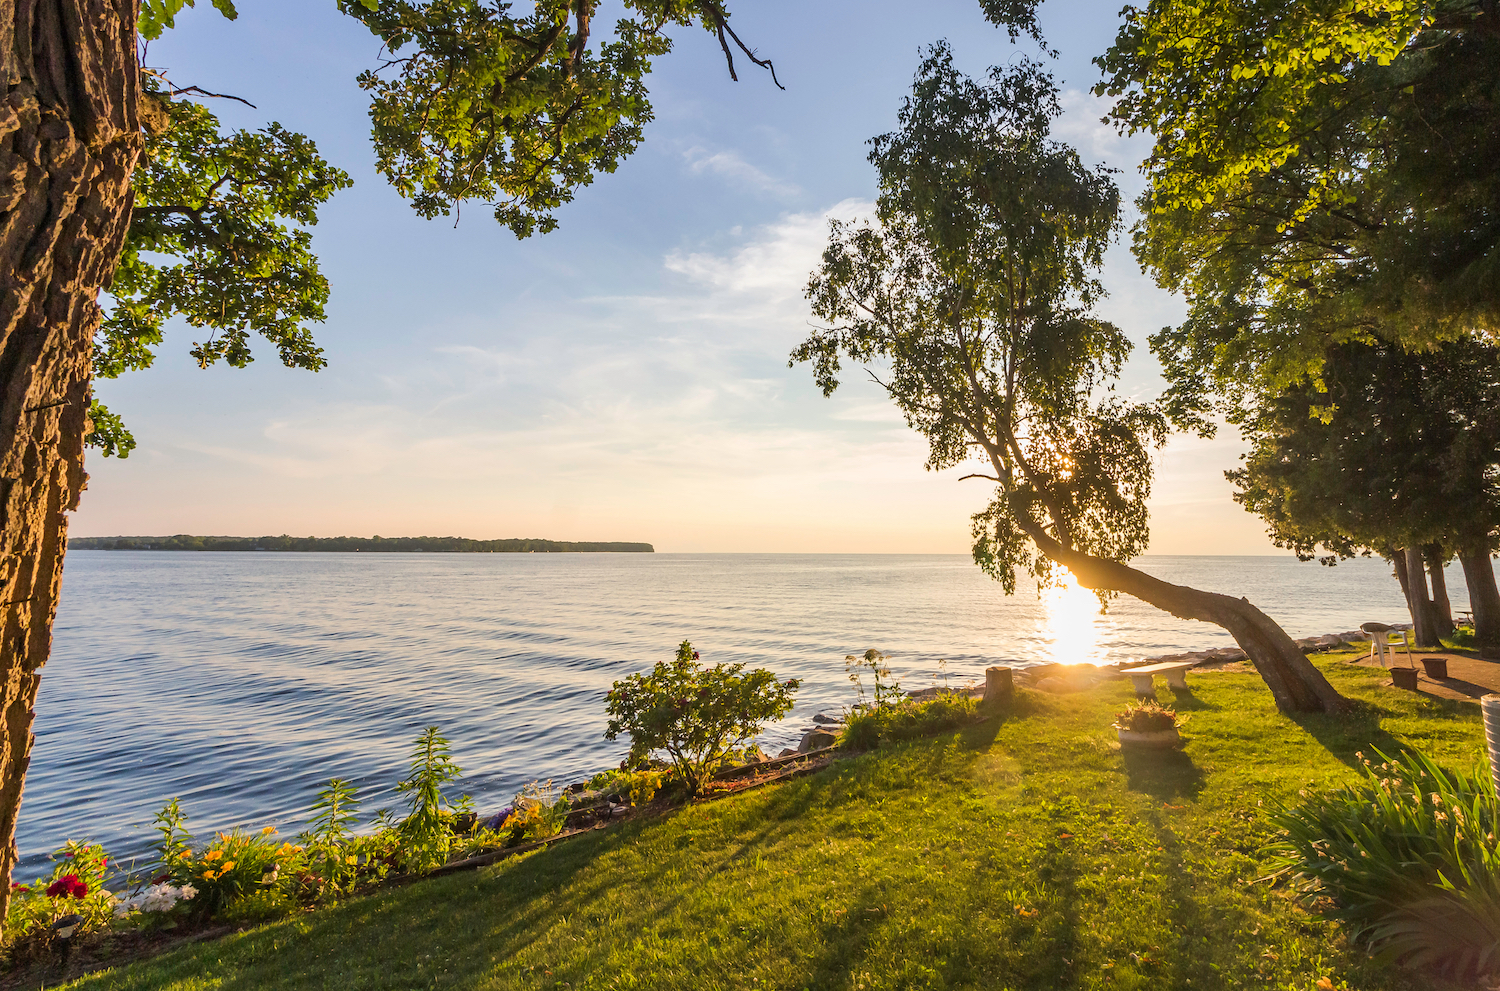 Sunset Over Lake Michigan and Garden Landscape